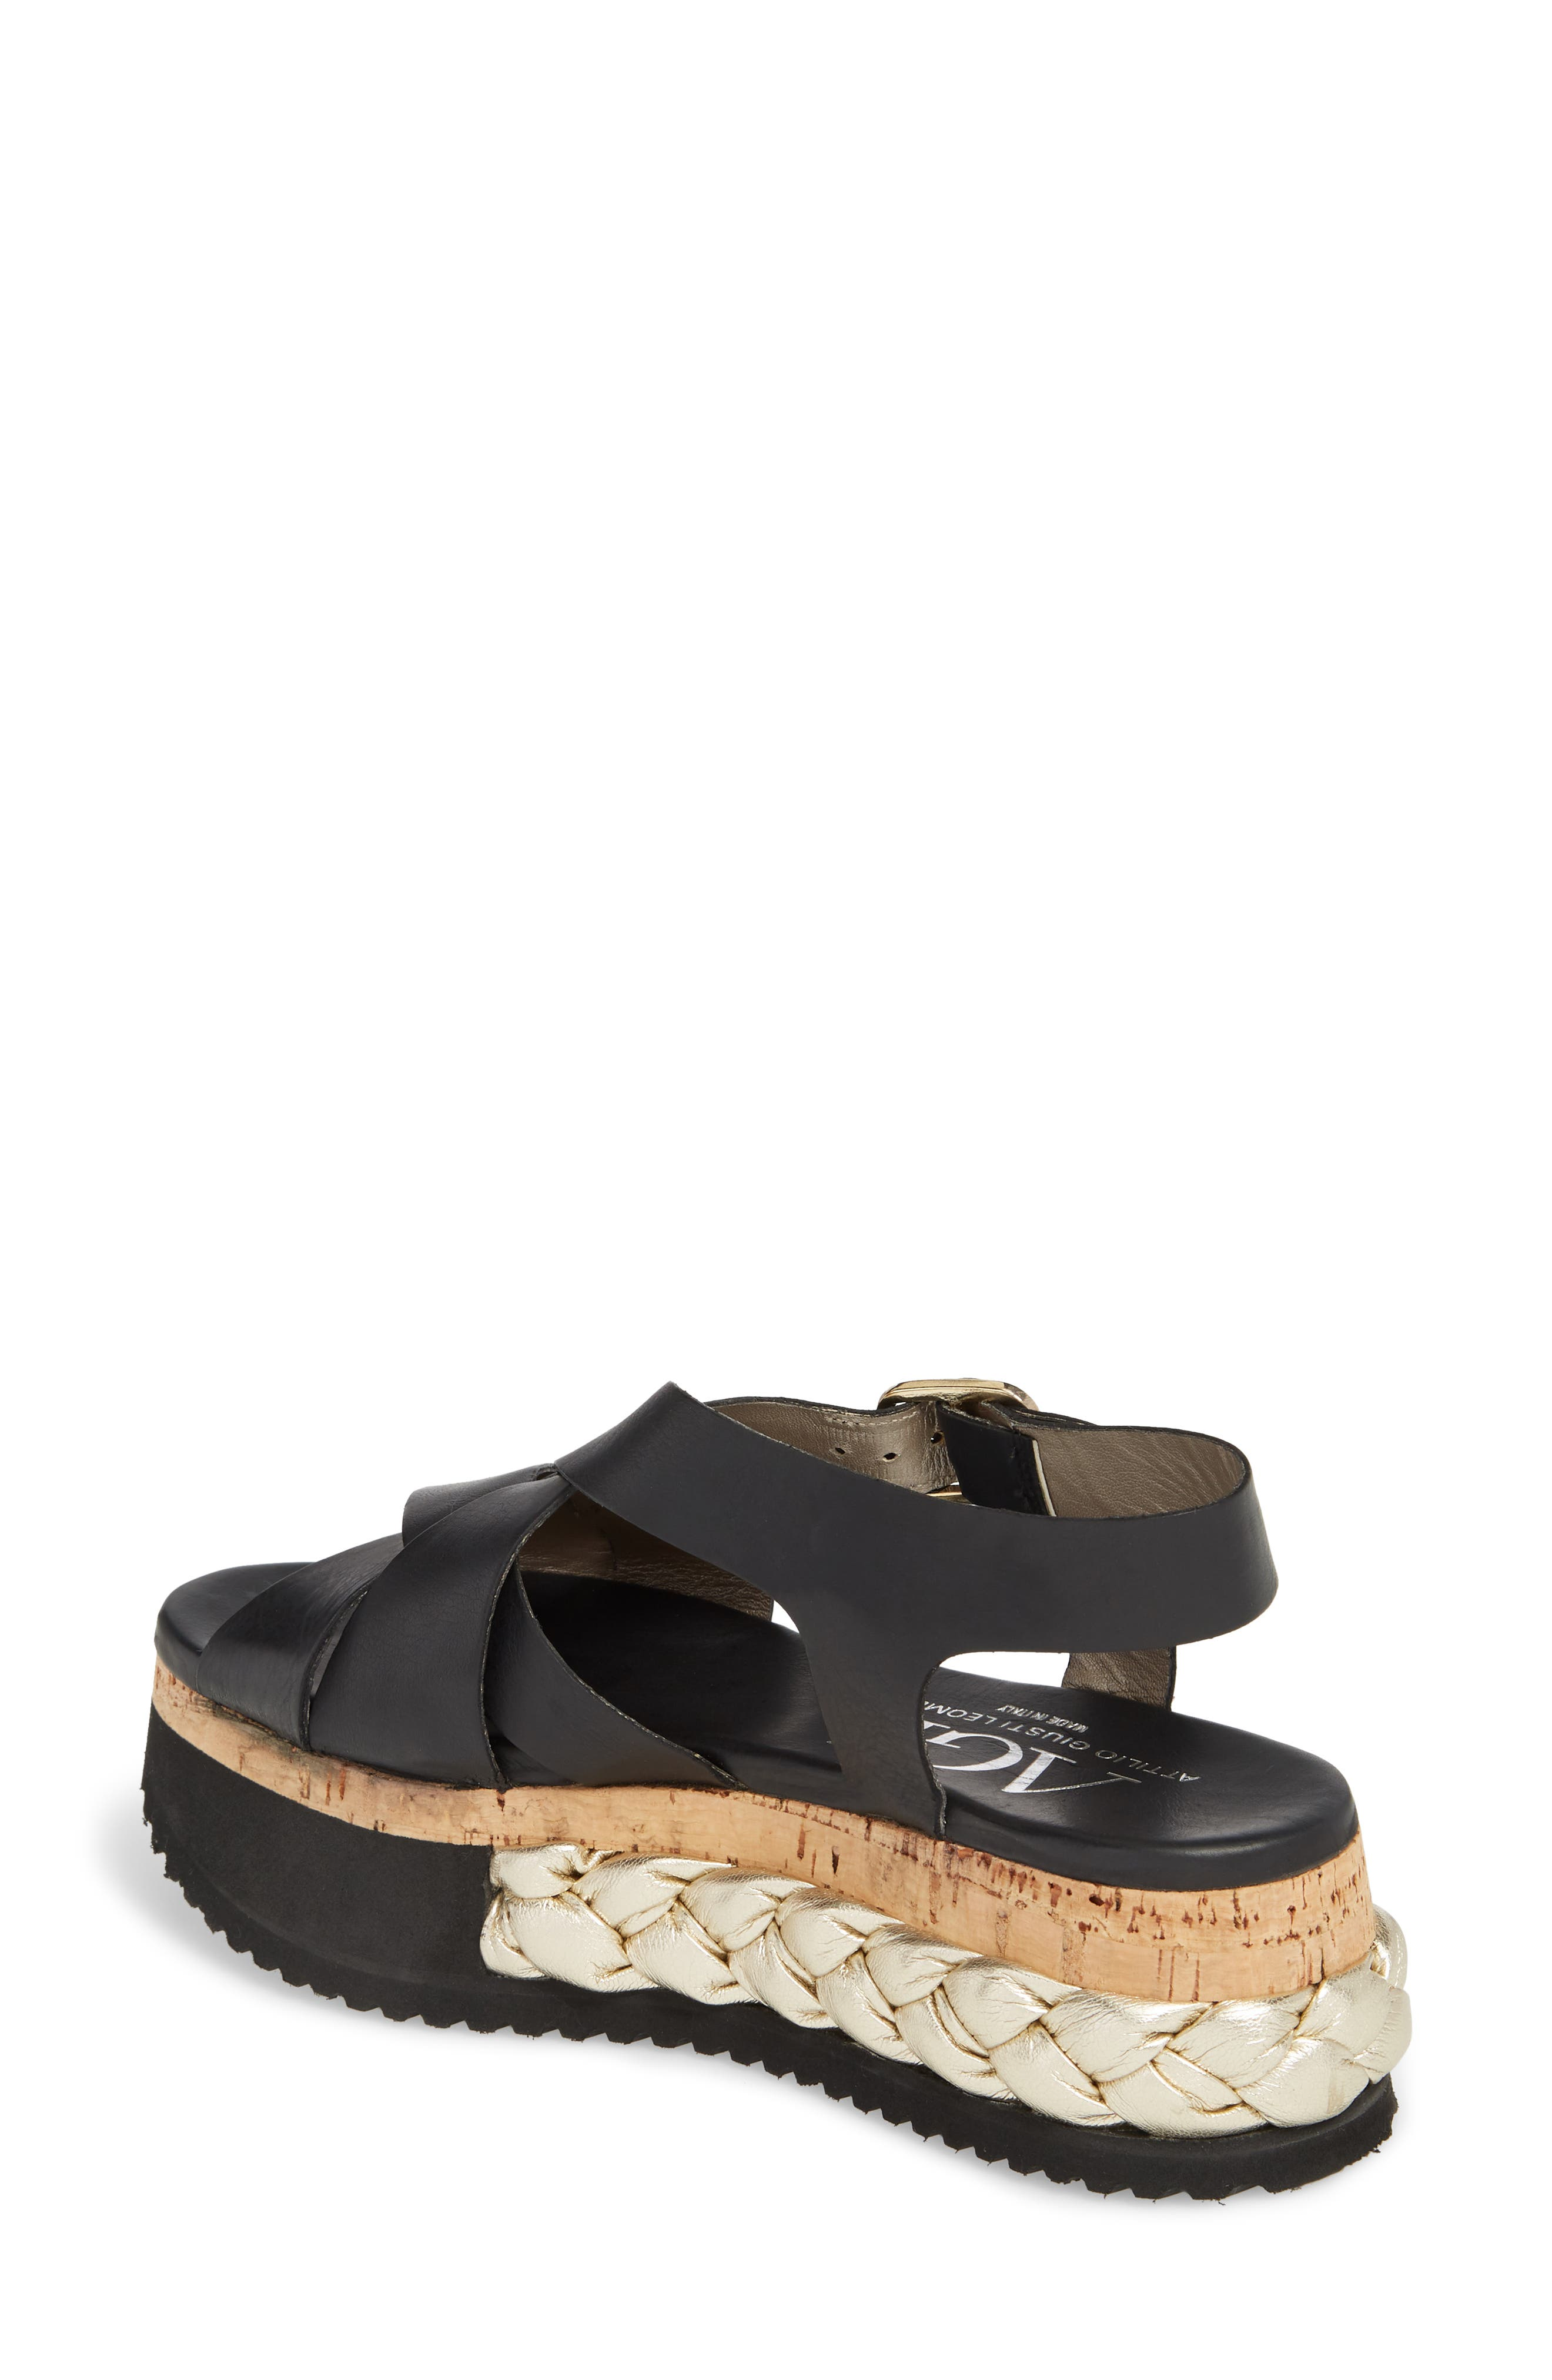 discount with paypal eastbay sale online AGL Embellished Leather Sandals 9y1D5Byw